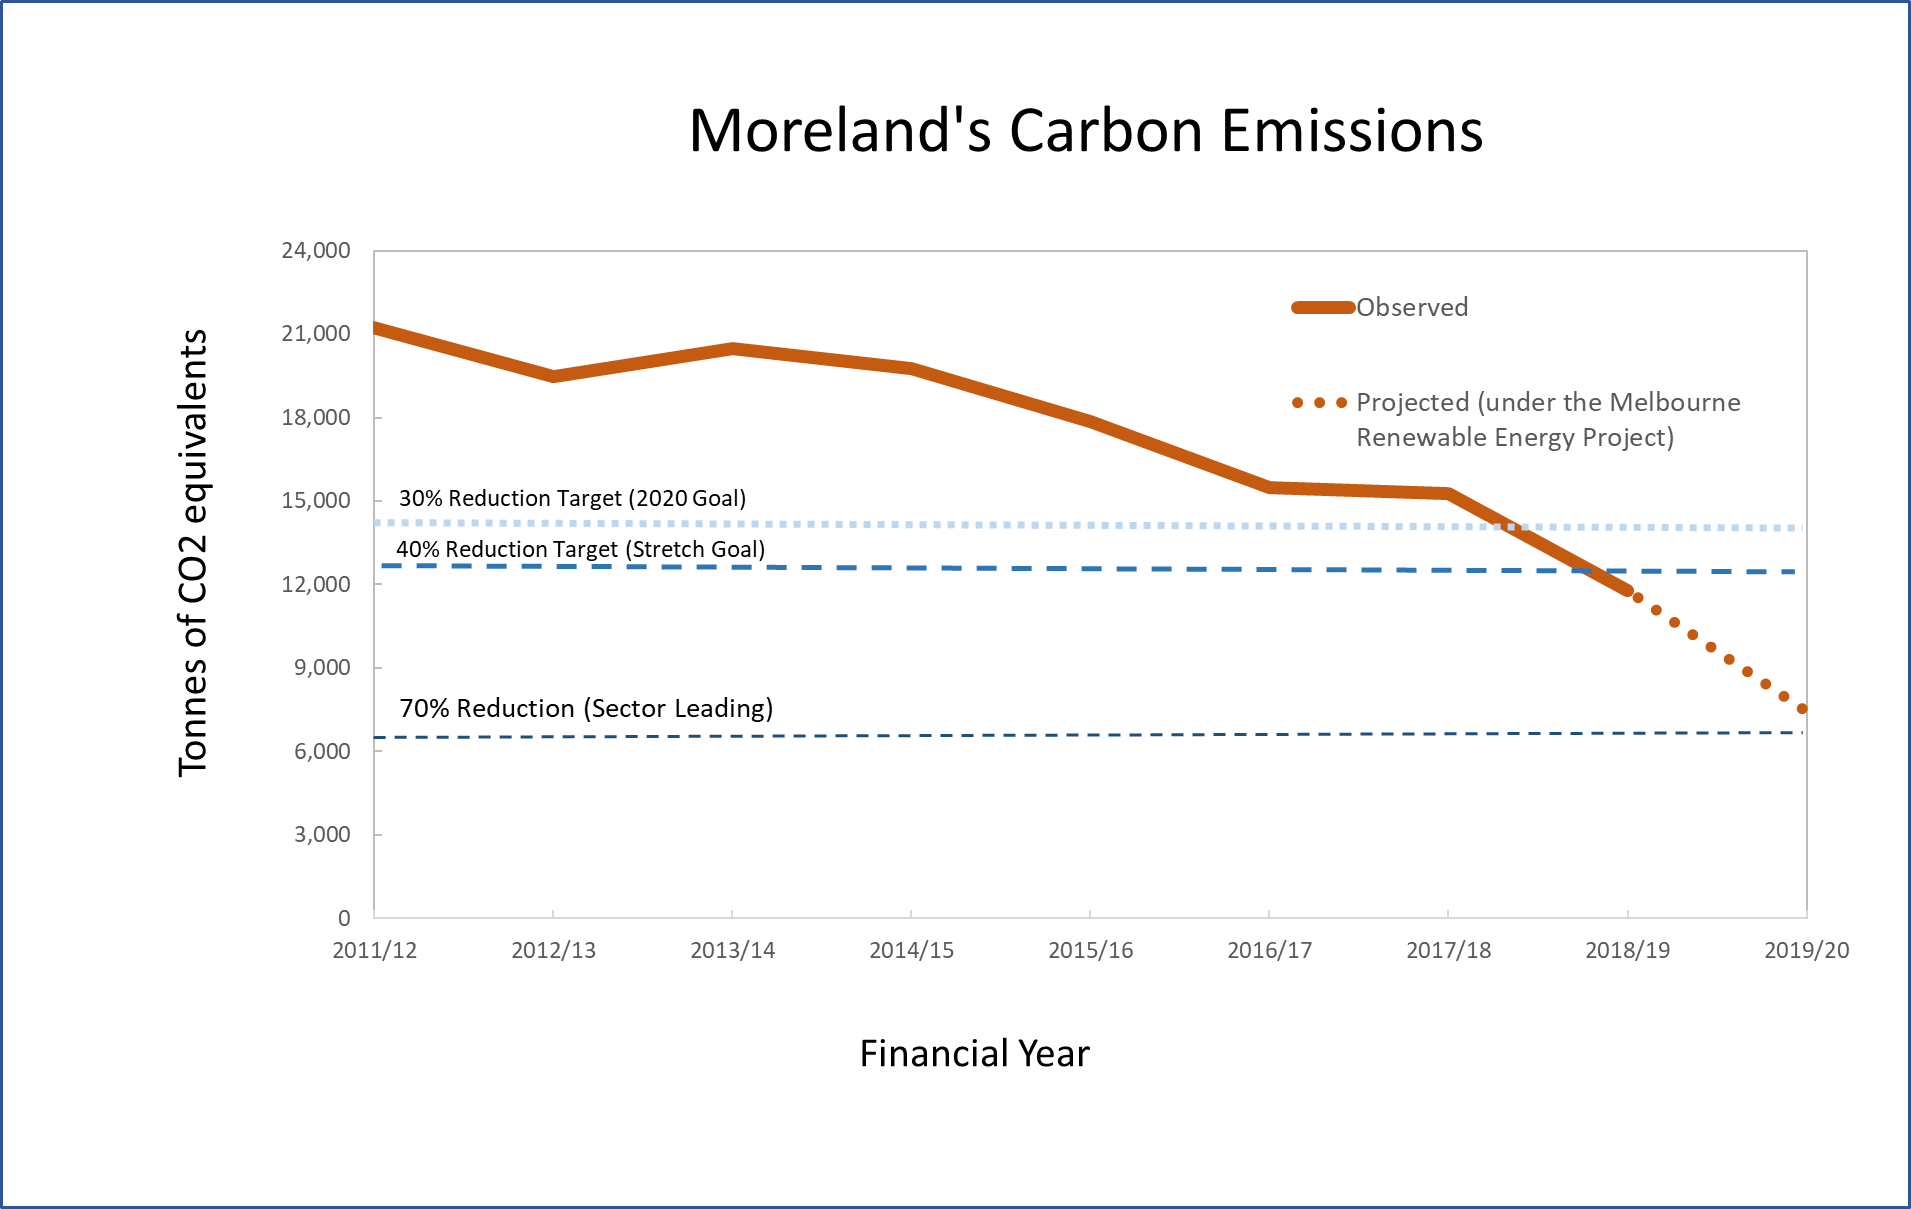 Line graph showing the downwards trend of Moreland's carbon emissions since 2011, crossing the 30%, 40% and nearing the 70% reduction thresholds